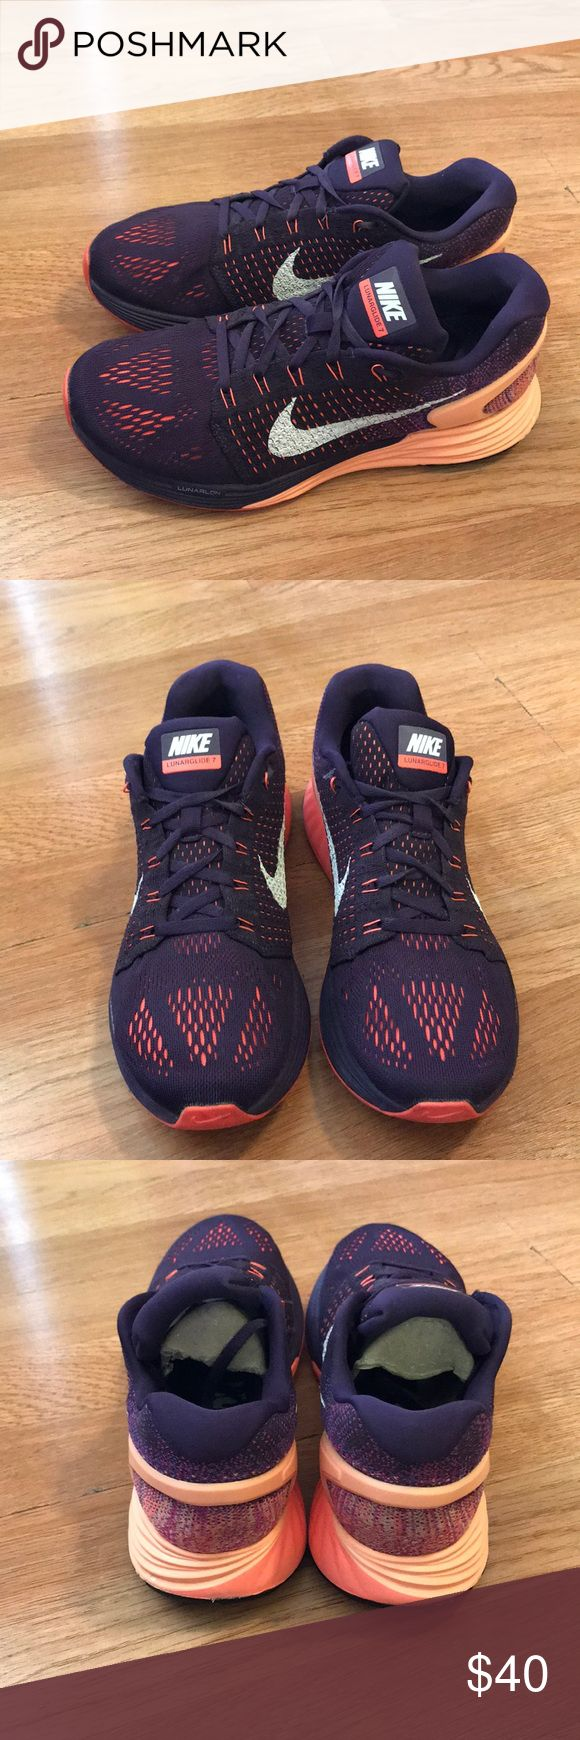 Nike lunarglide 7 Size 8 In good condition very comfortable Nike Shoes Athletic Shoes